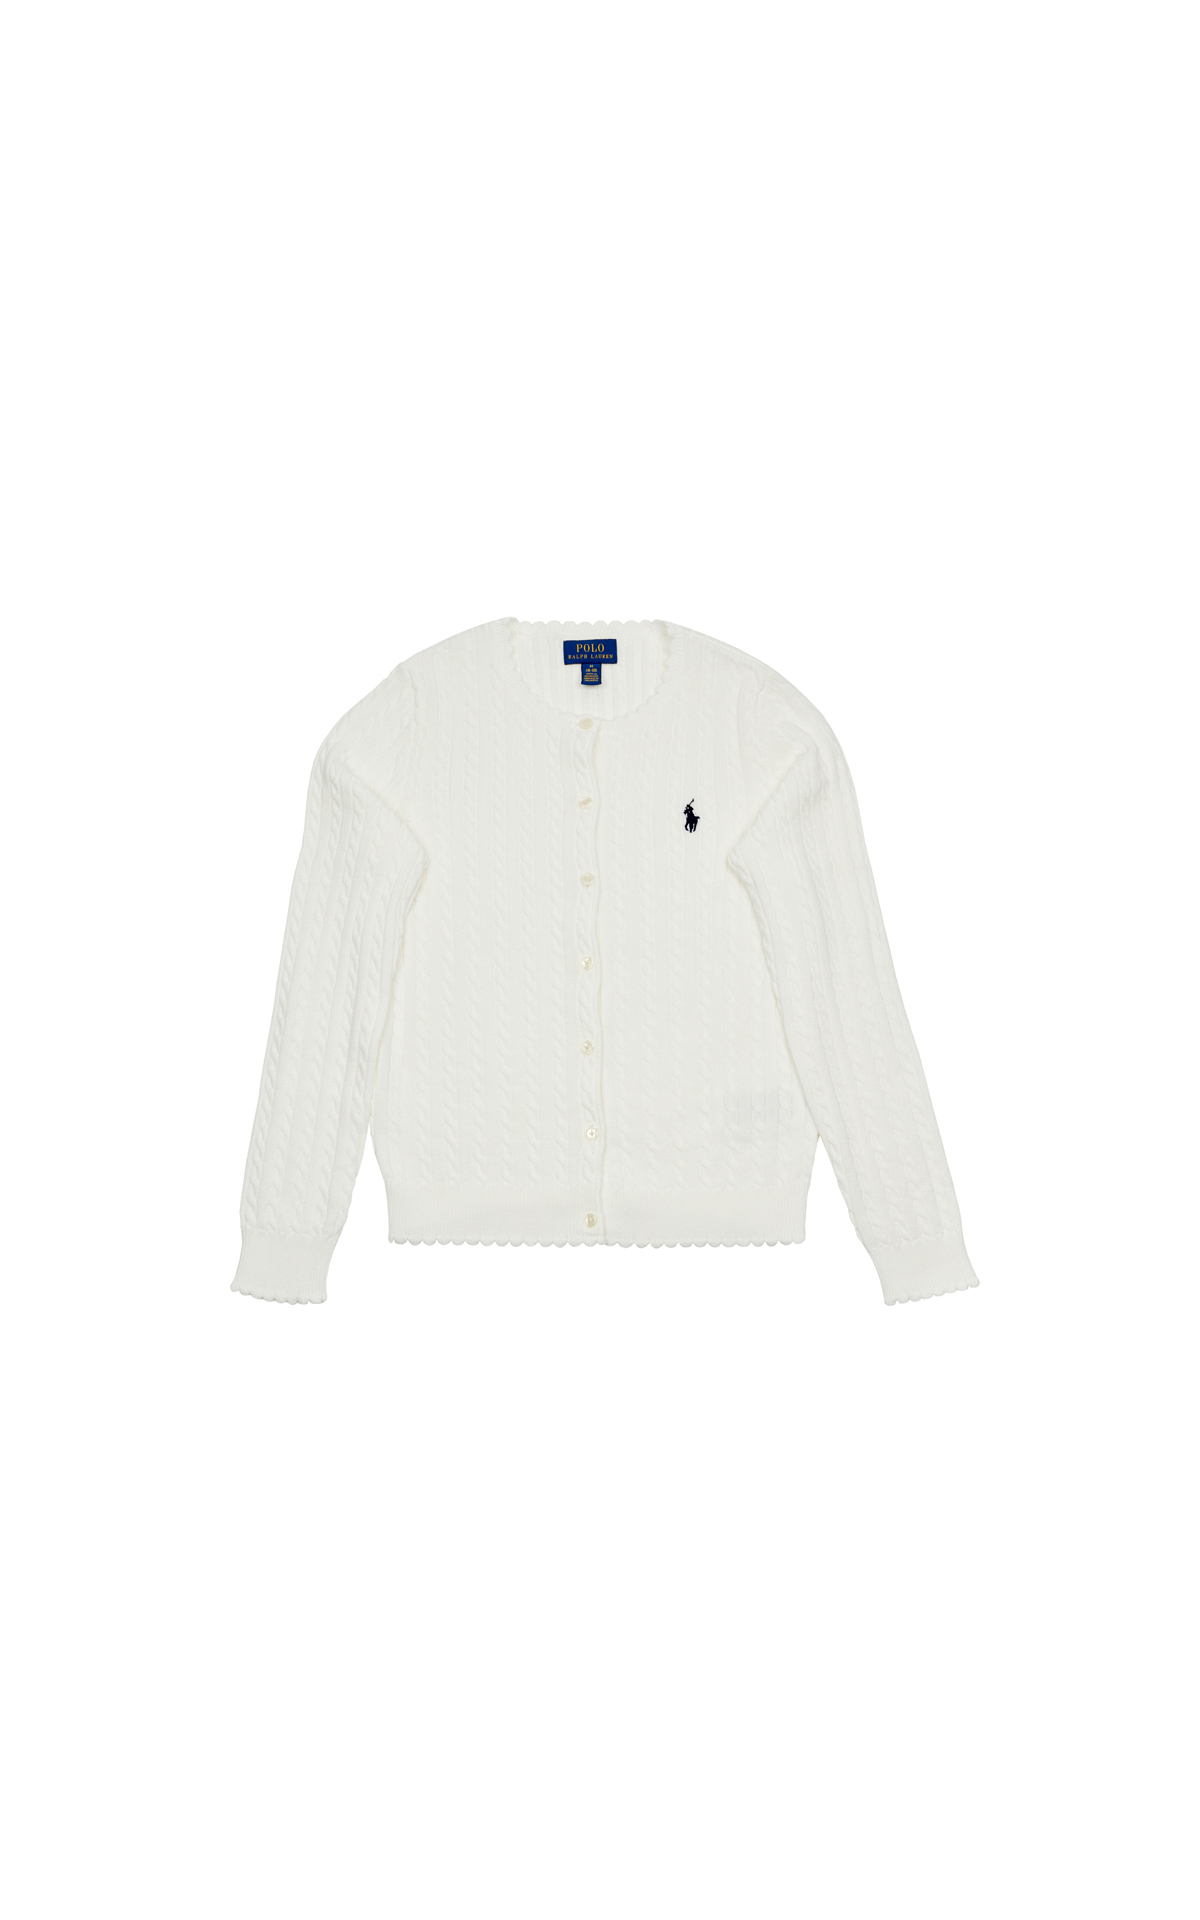 Polo Ralph Lauren Children's cotton cable cardigan at The Bicester Village Shopping Collection